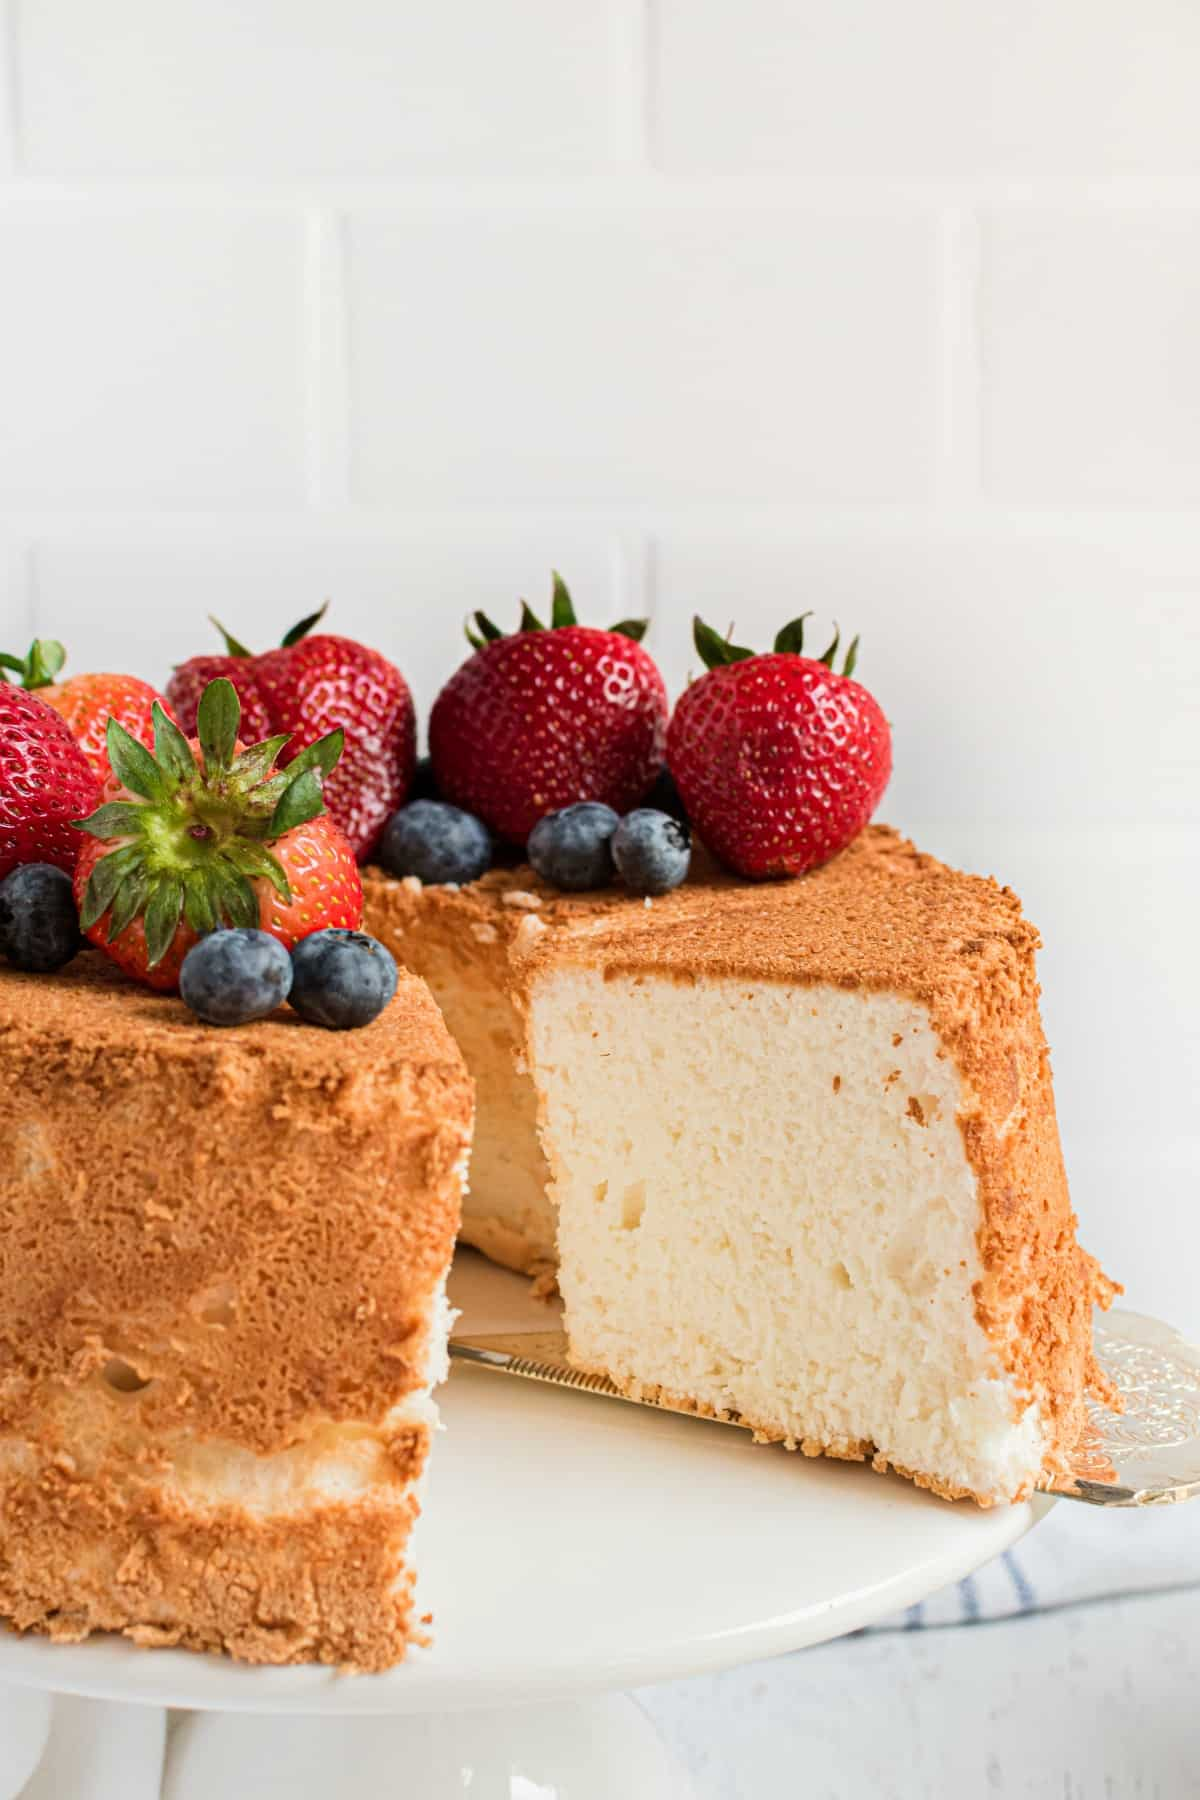 Angel food cake on a white cake platter topped with fresh berries. One slice removed.